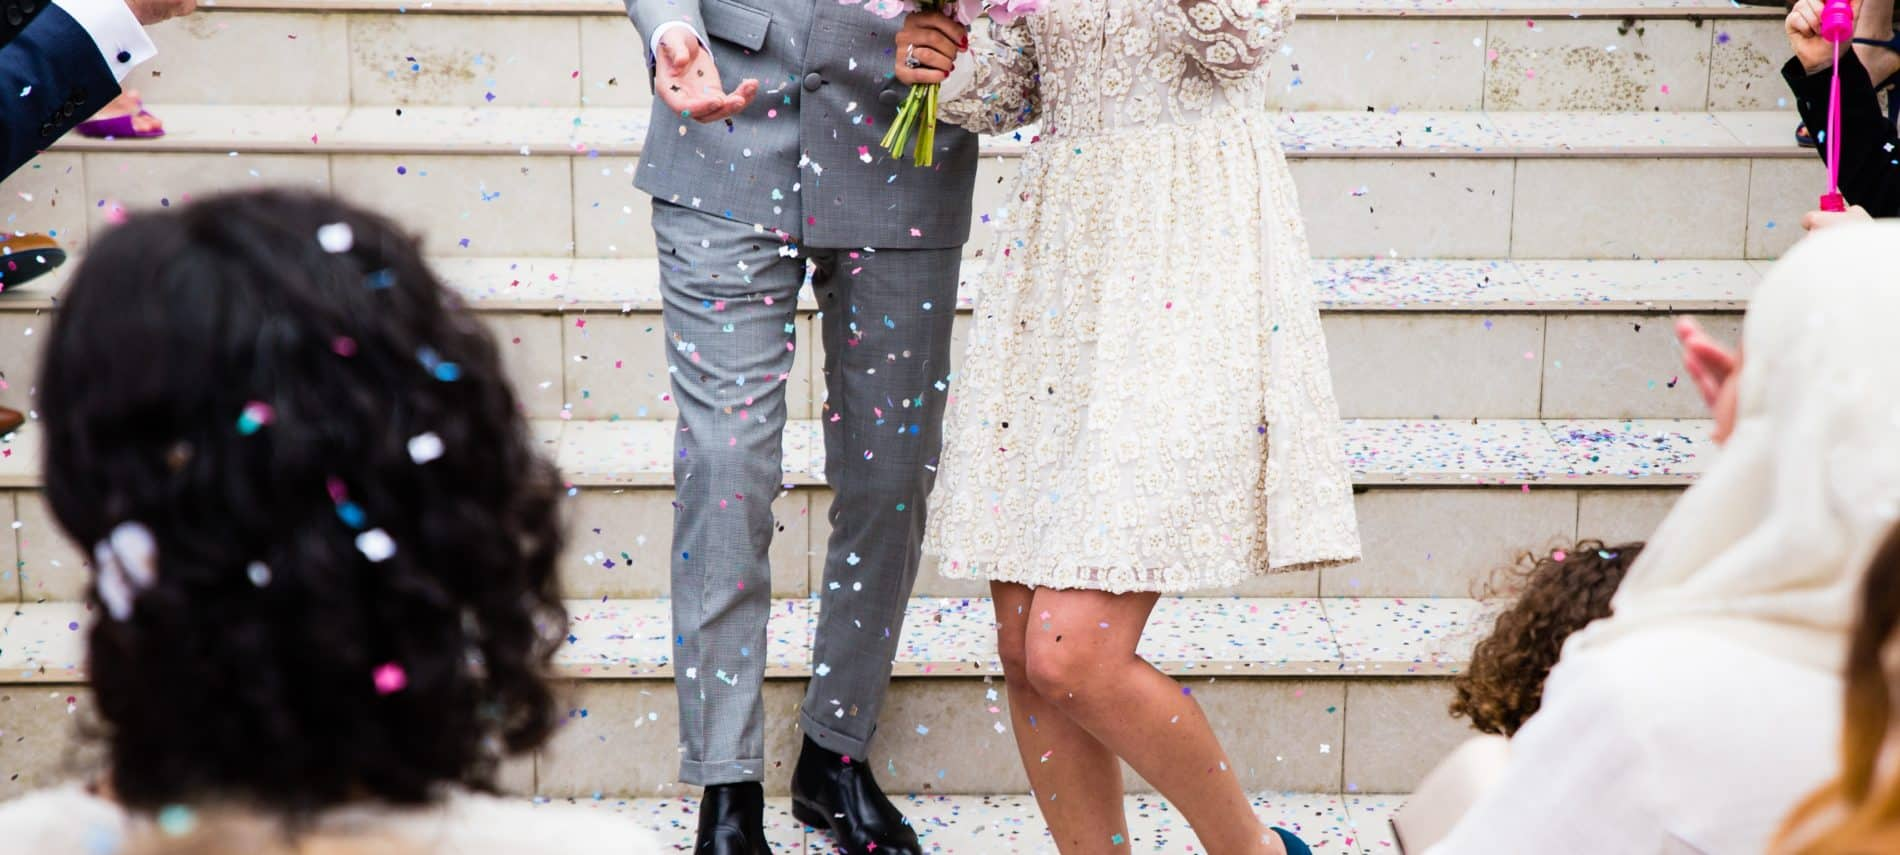 bride and groom standing on the steps of a church with friend surrounding them throwing confetti on them